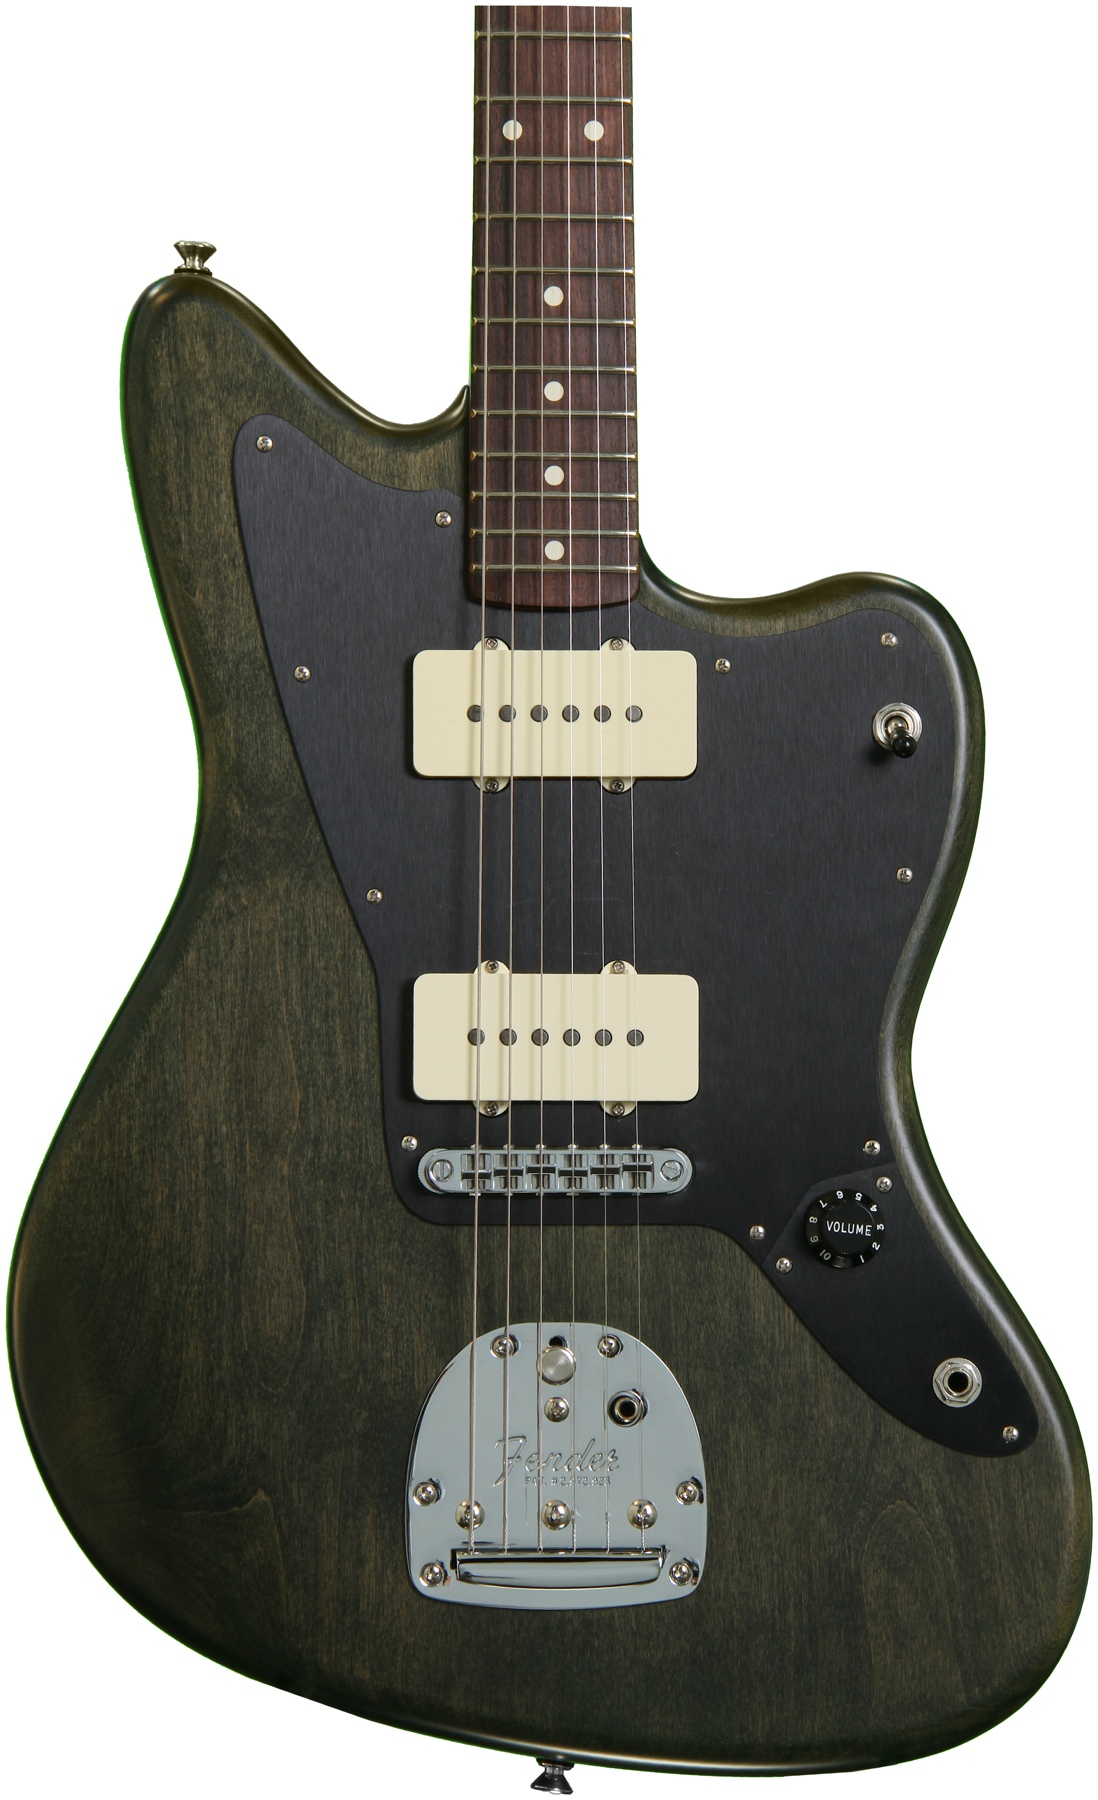 fender blacktop jaguar hh wiring diagram fender wiring diagrams description fender blacktop telecaster hh why all the fuss fender blacktop stratocaster wiring diagram enlarge tele